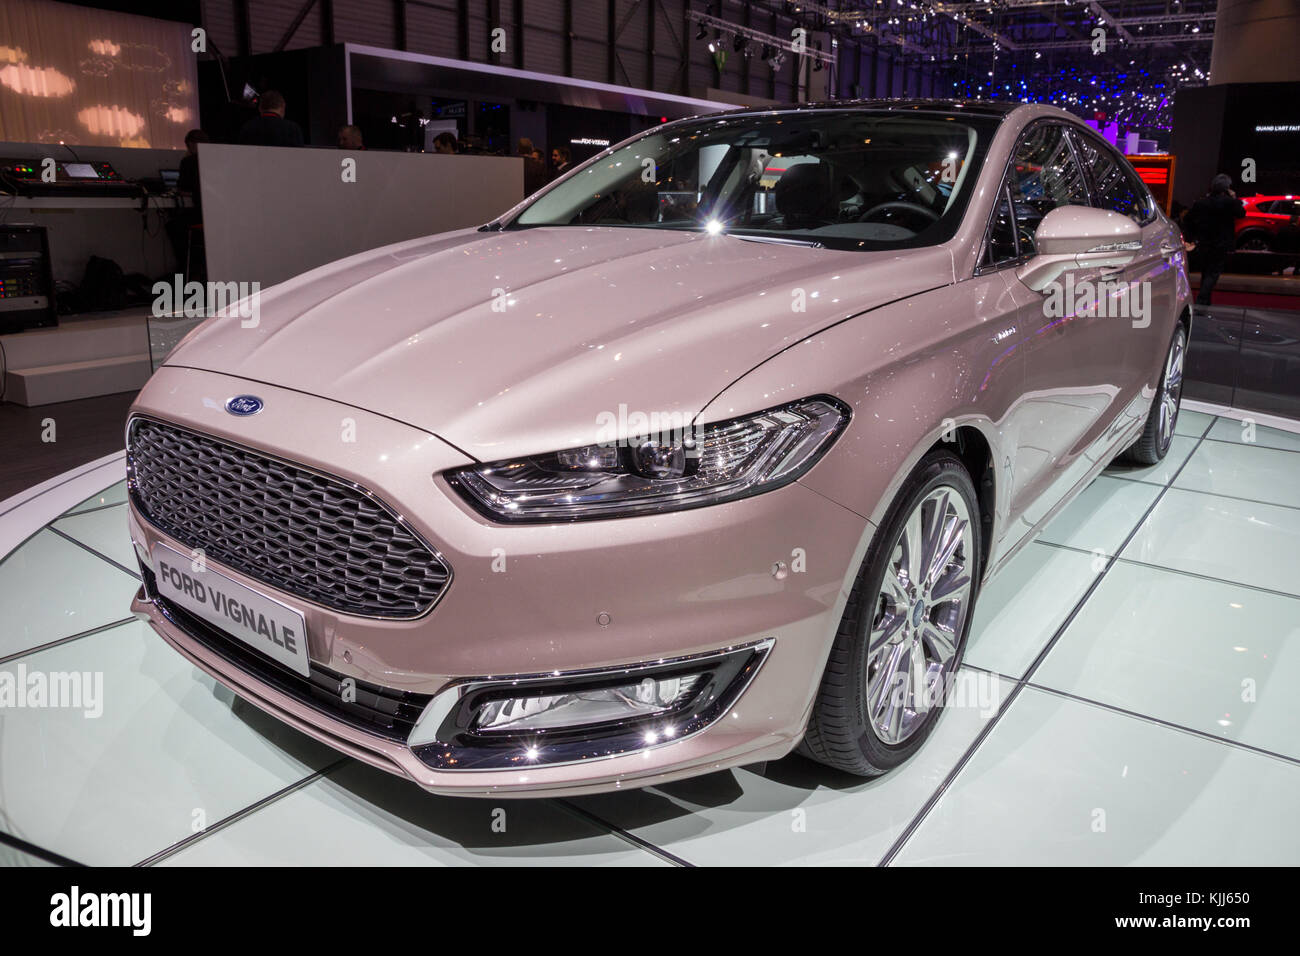 geneva switzerland march 1 2016 2017 ford mondeo vignale car stock photo 166357100 alamy. Black Bedroom Furniture Sets. Home Design Ideas